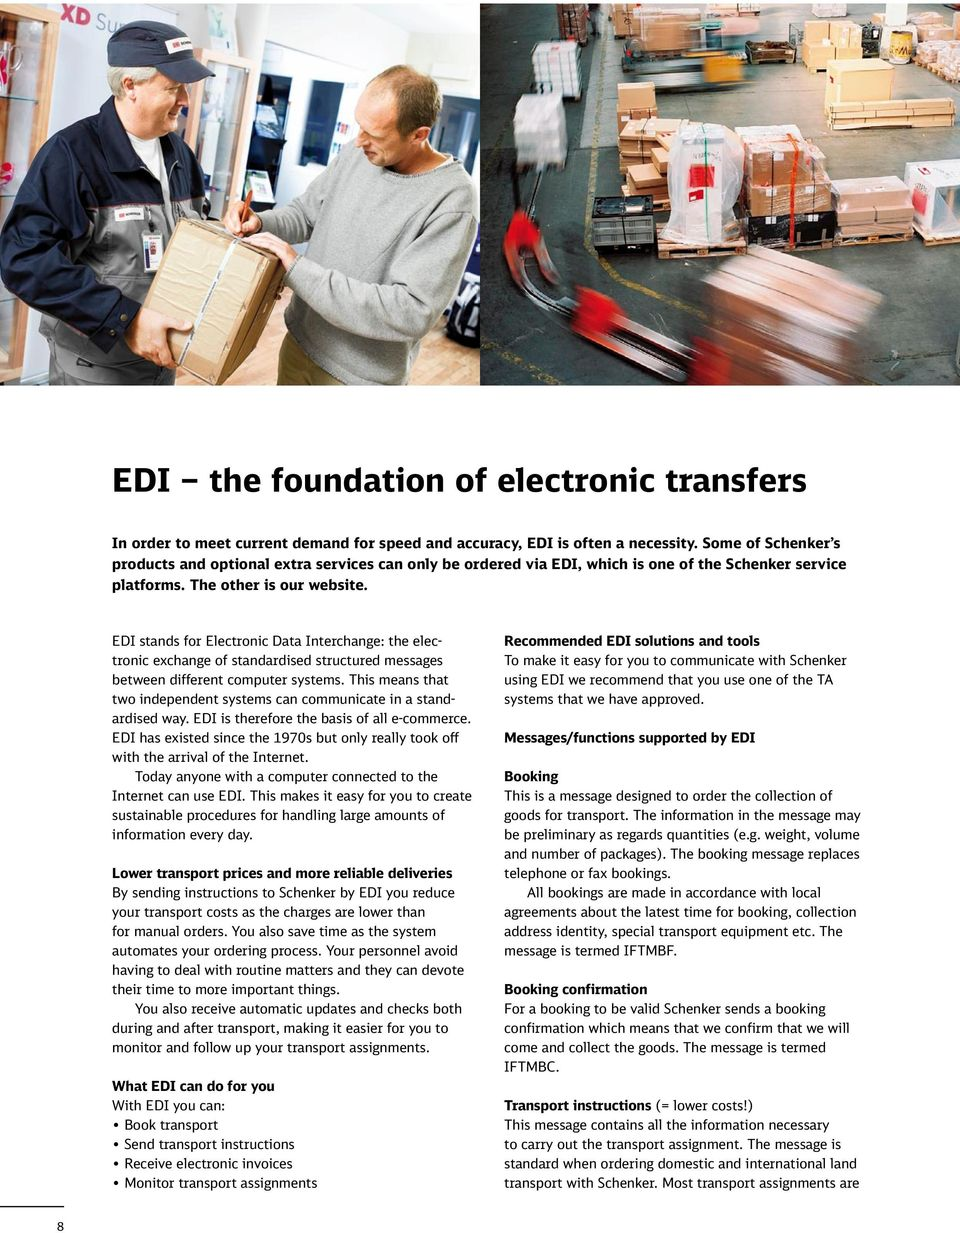 EDI stands for Electronic Data Interchange: the electronic exchange of standardised structured messages between different computer systems.